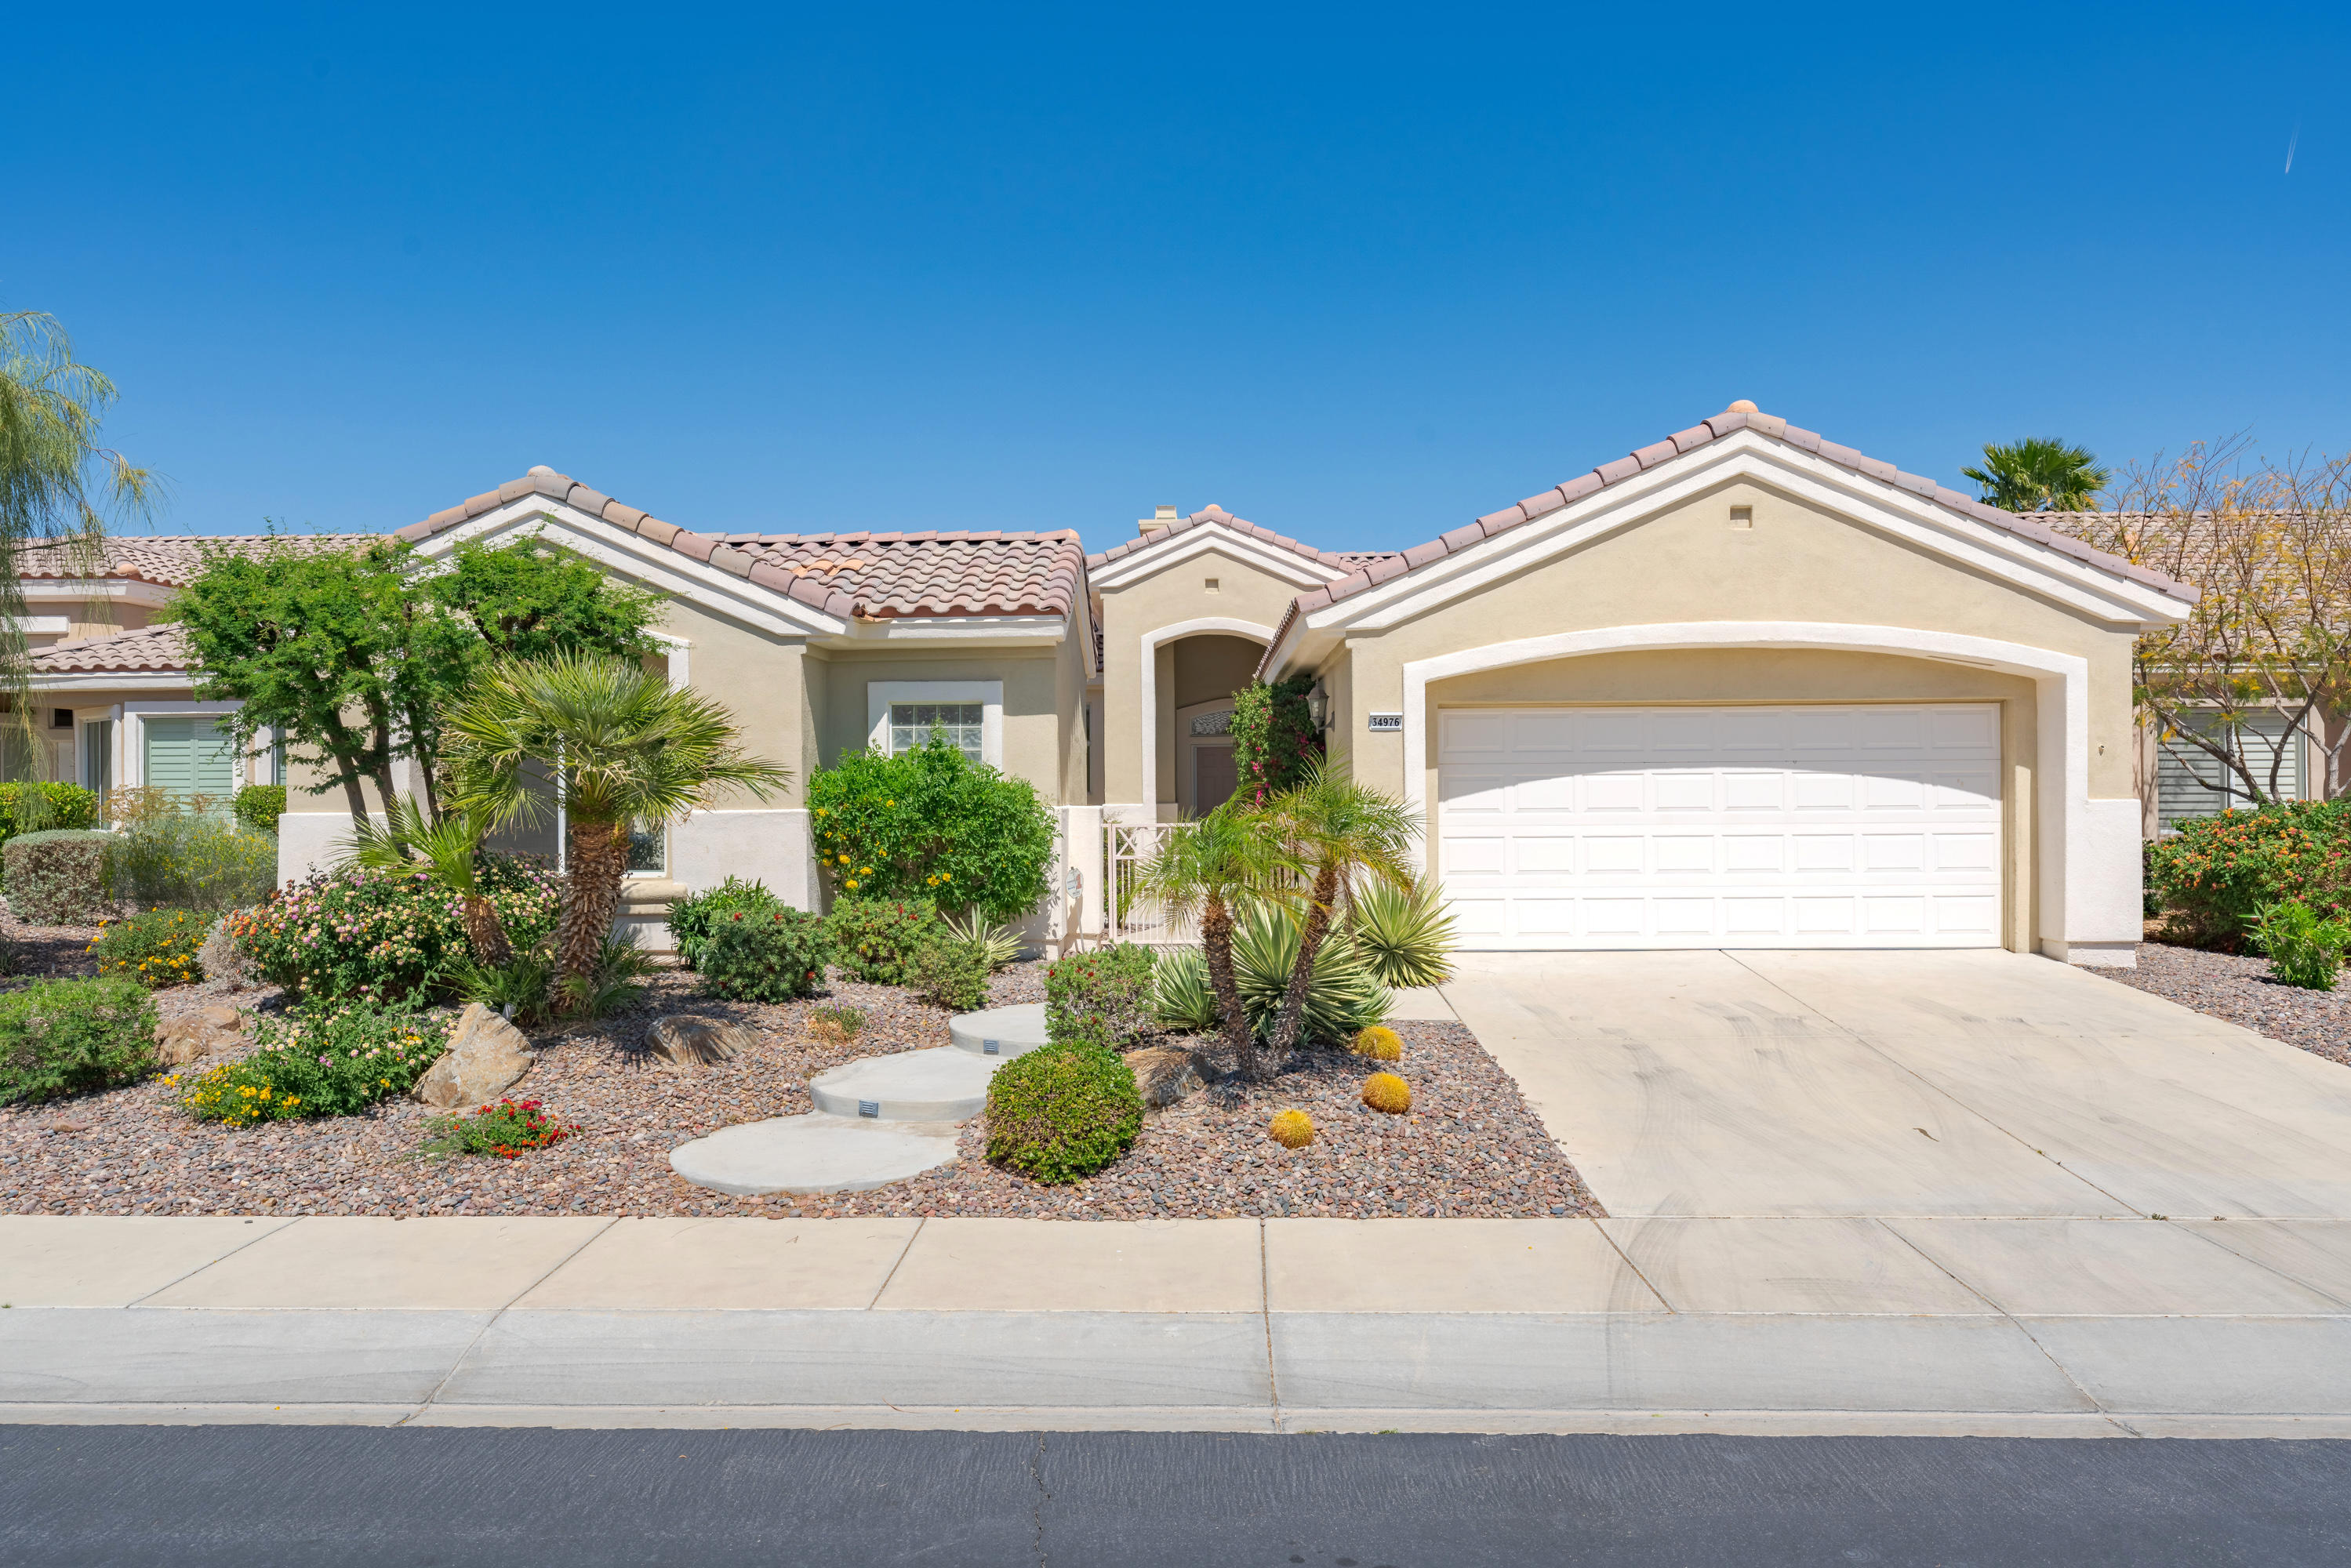 Photo of 34976 Staccato Street, Palm Desert, CA 92211